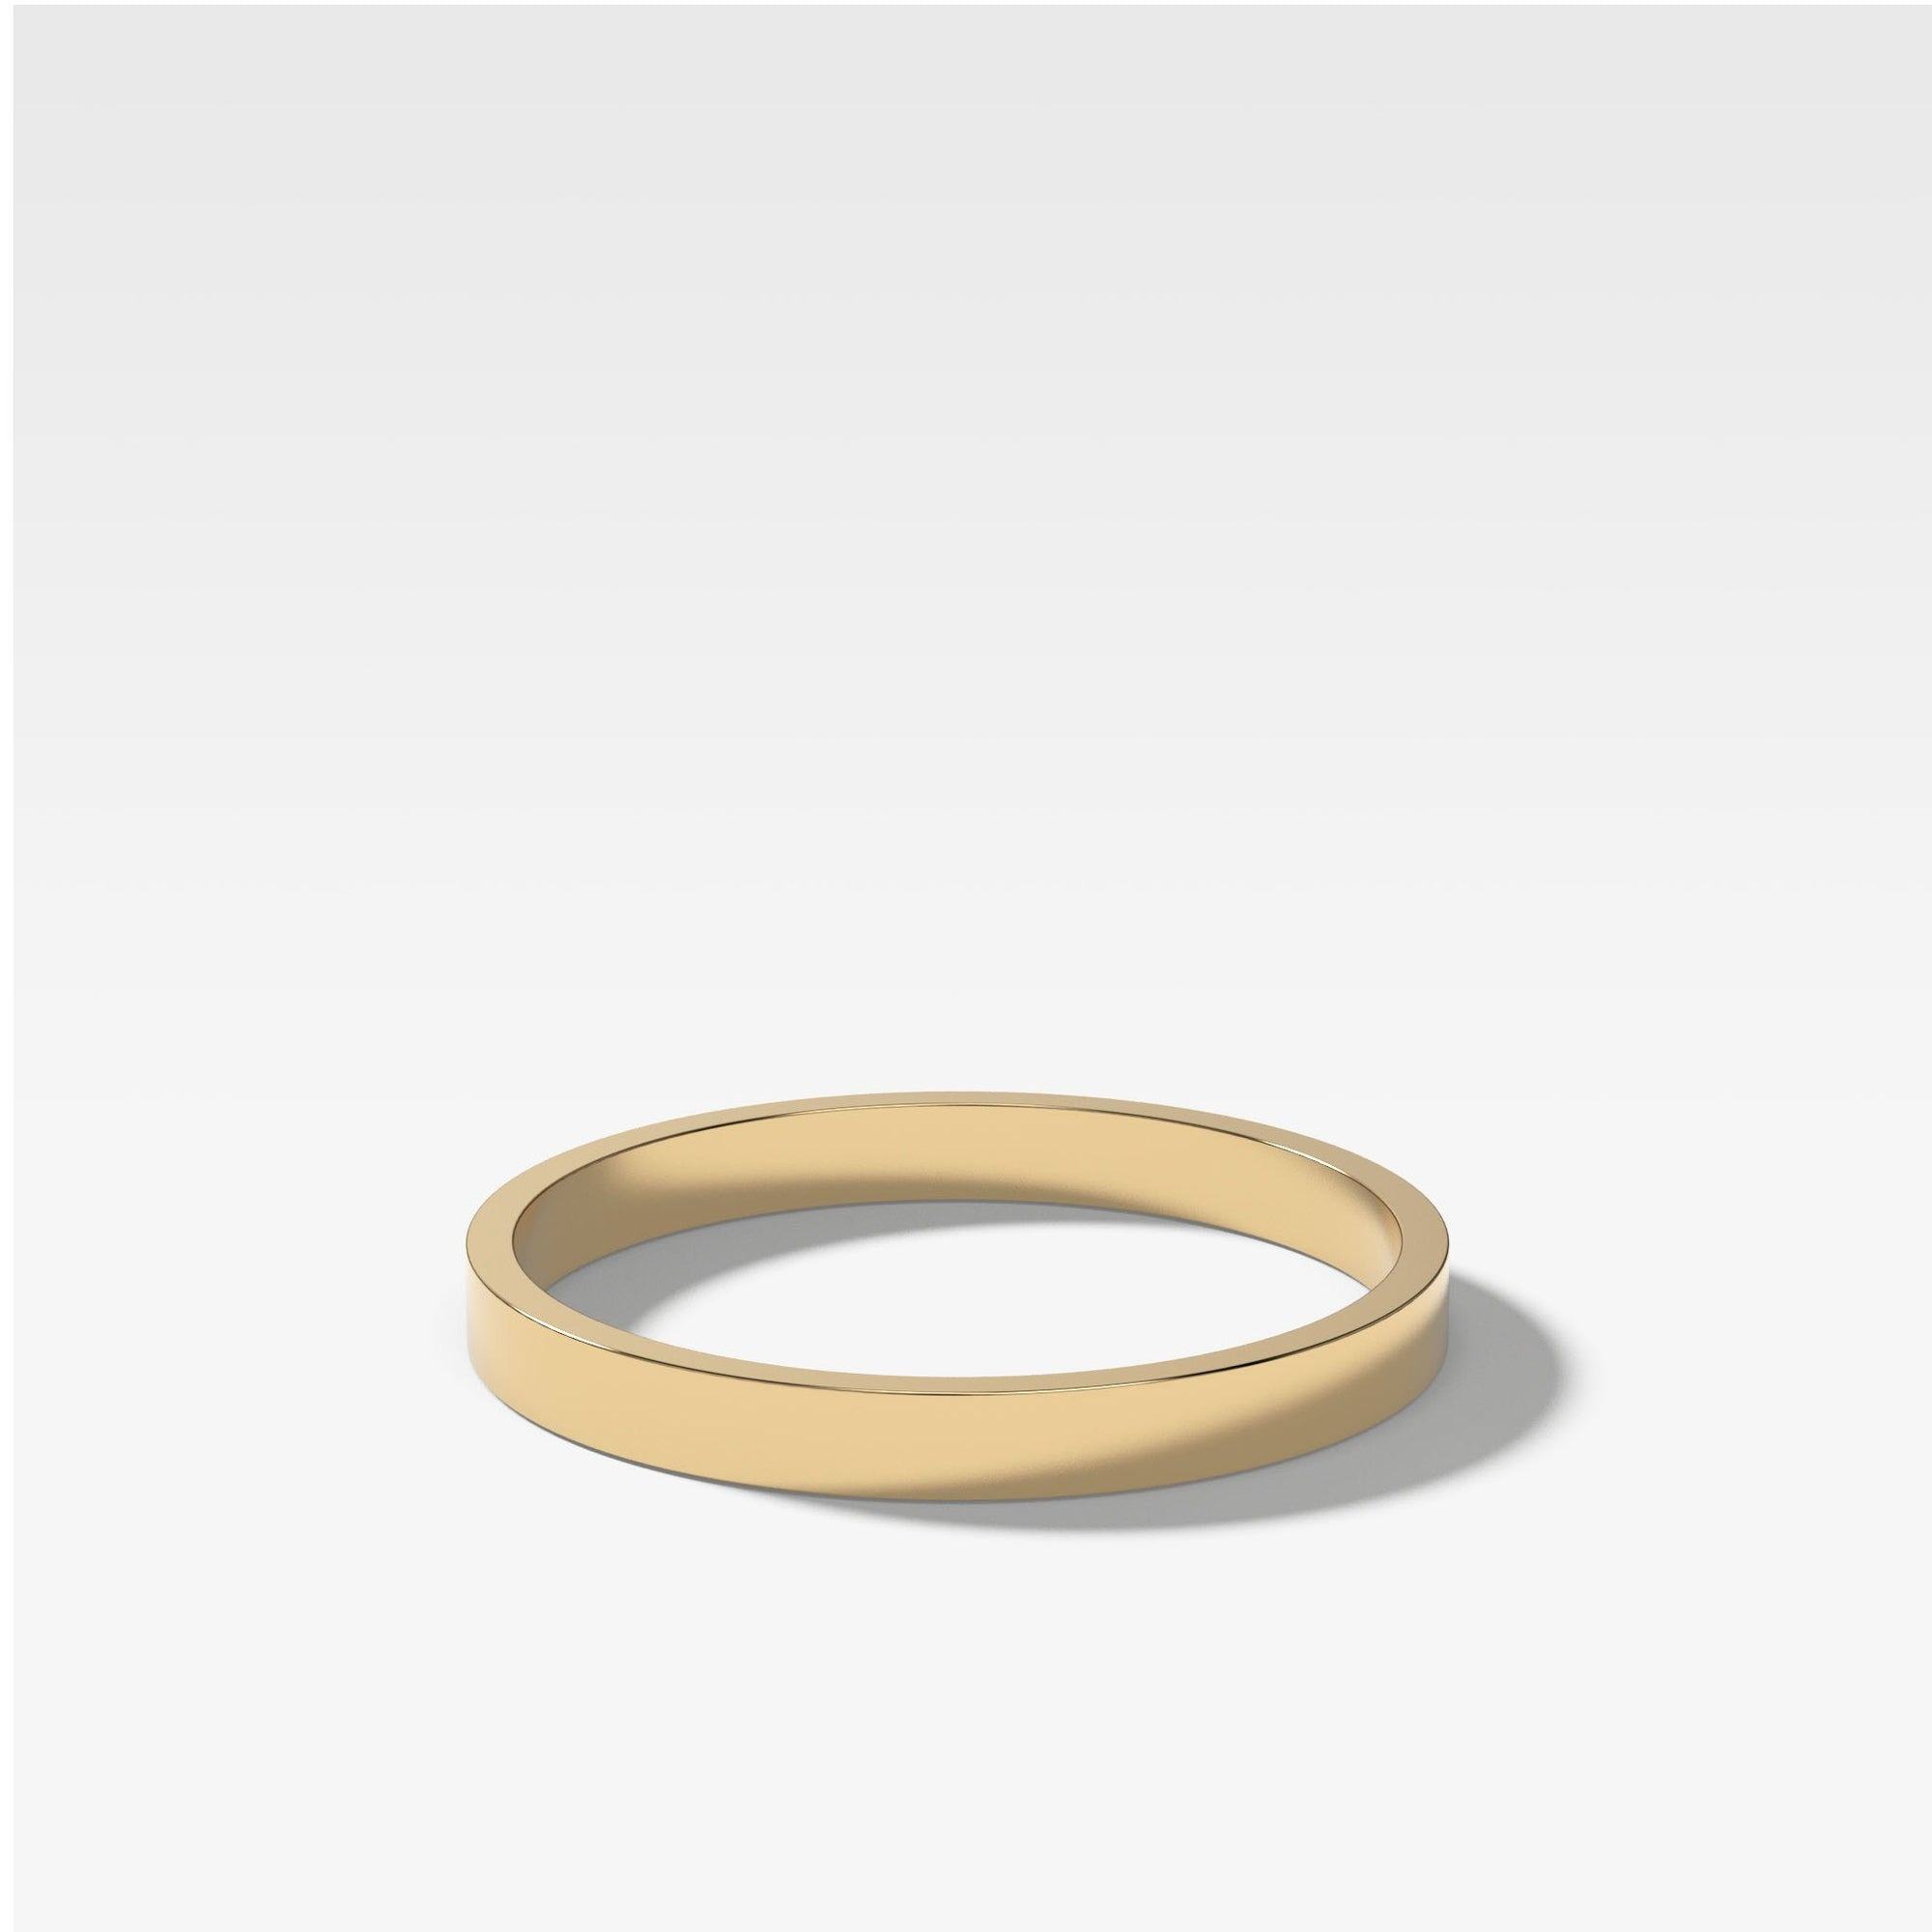 Finest Band (2Mm) In Yellow Gold By Good Stone